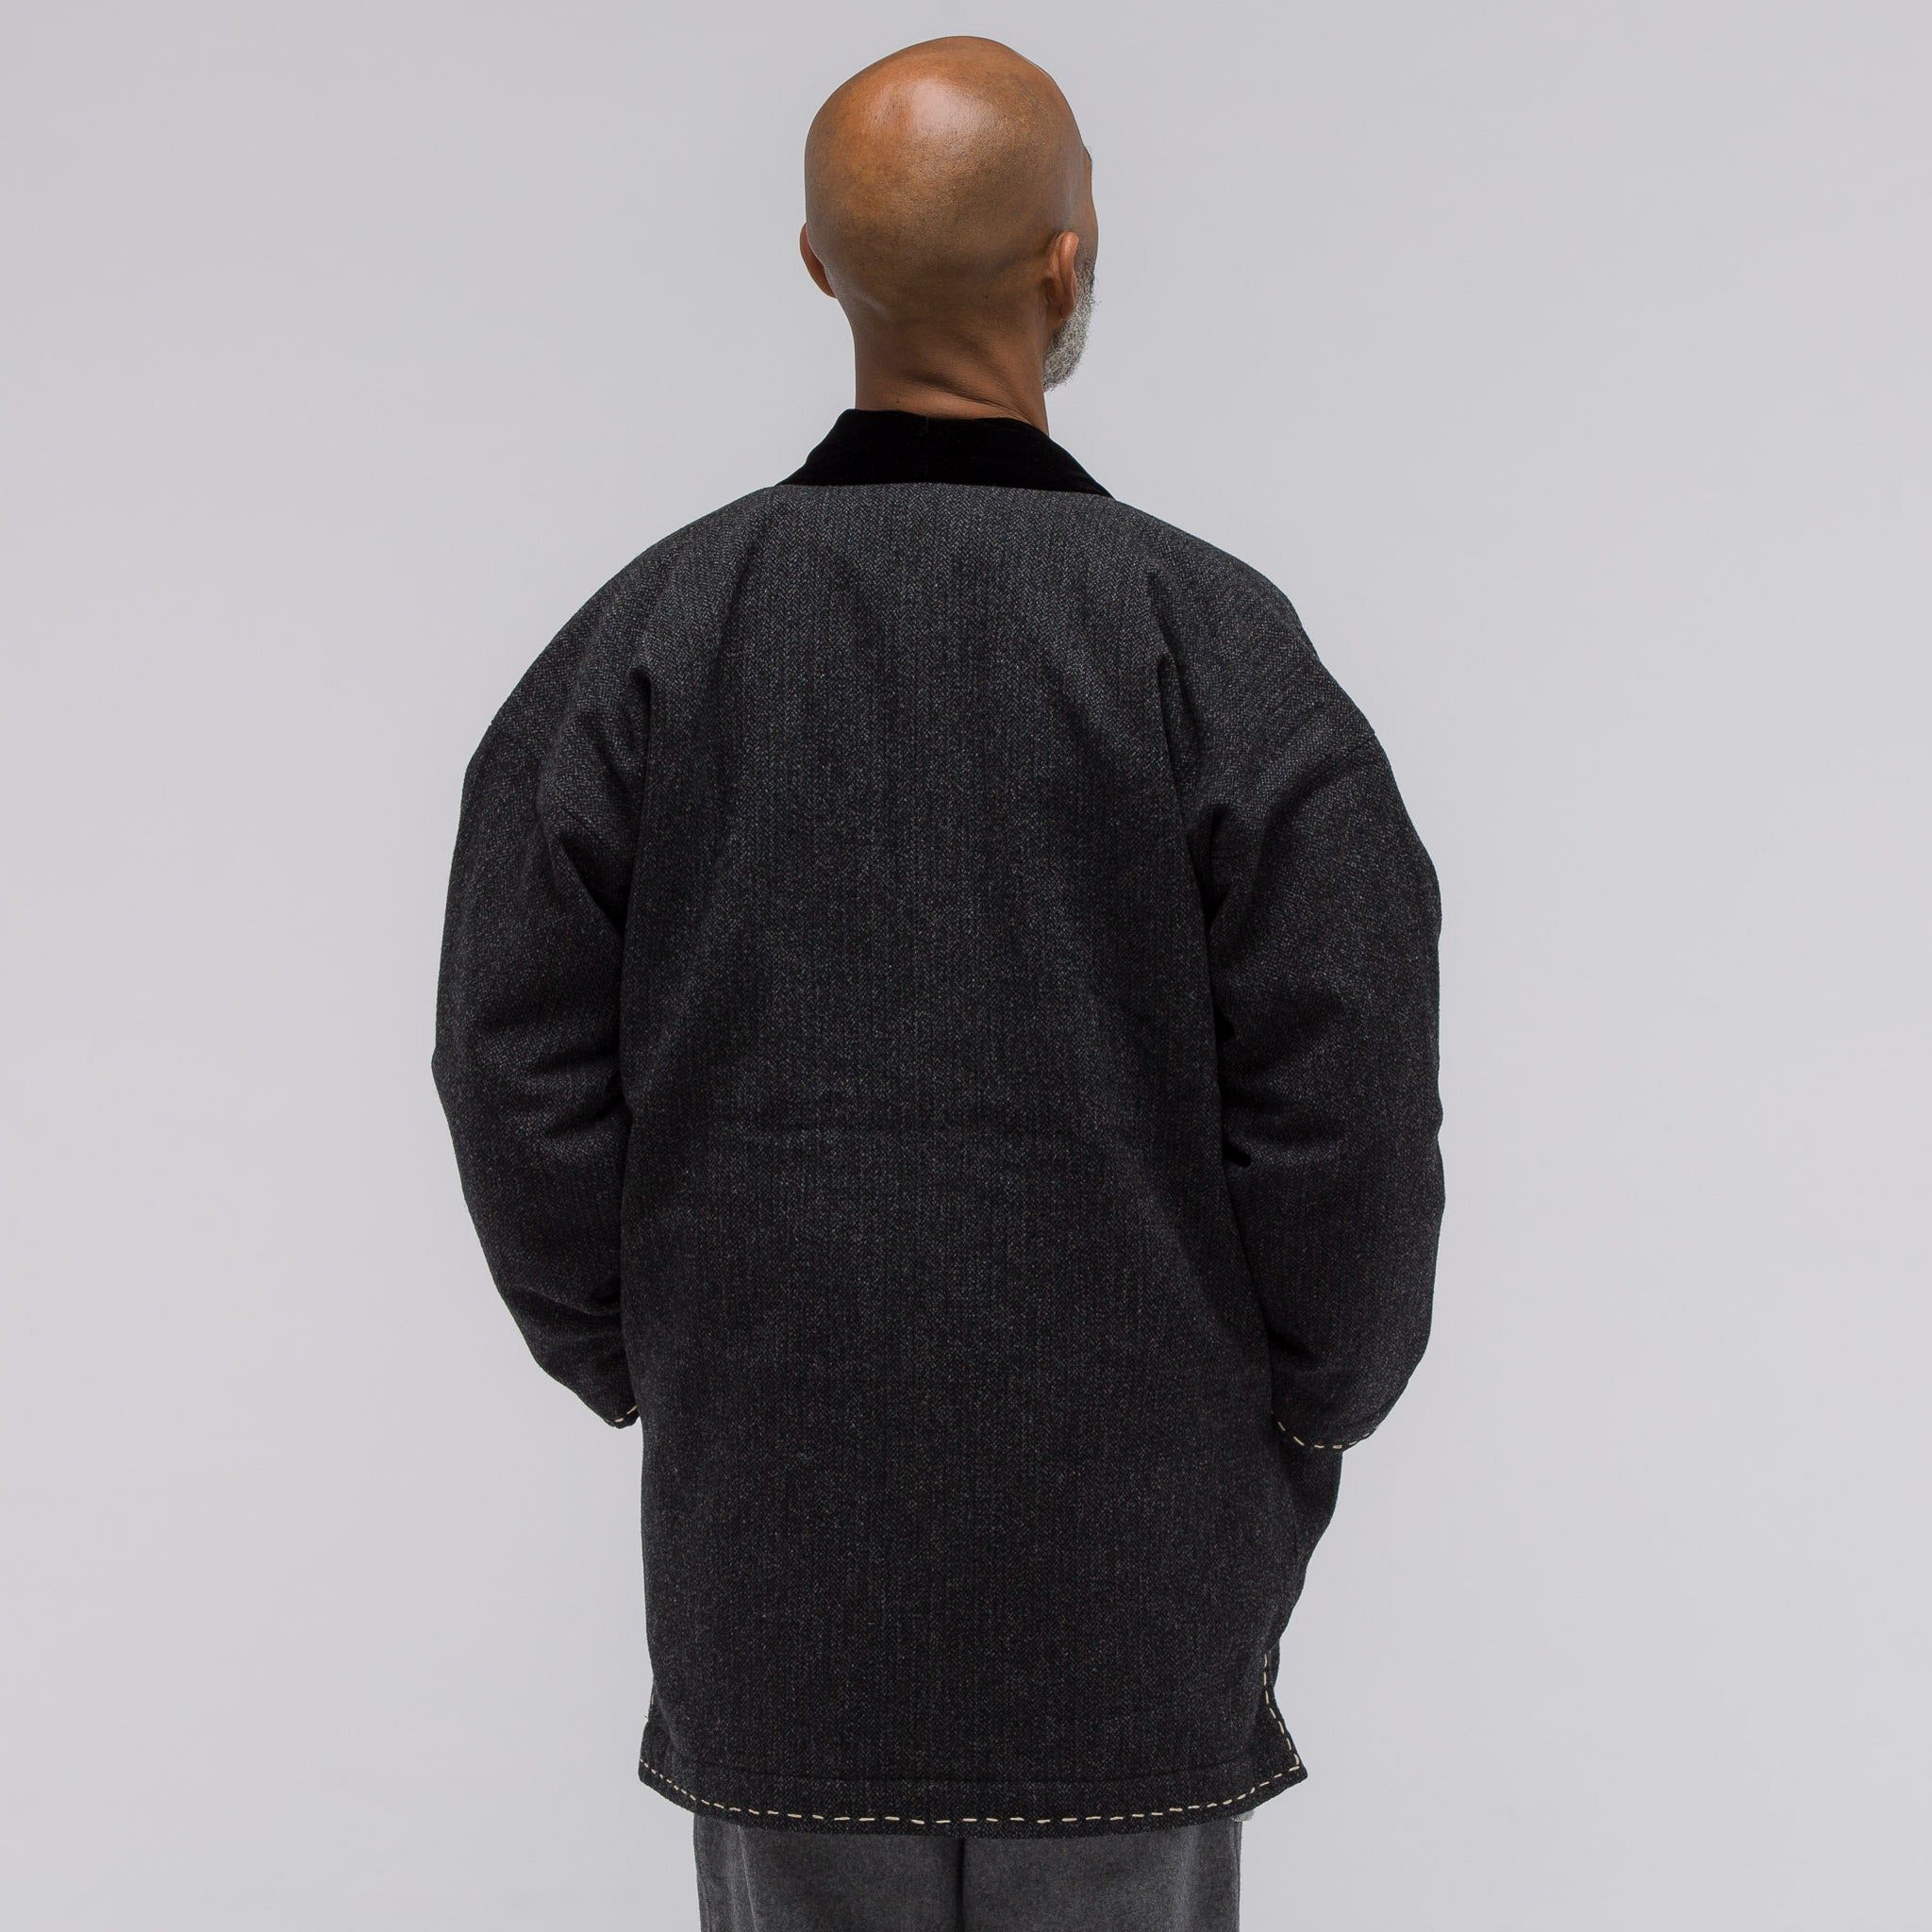 Dotera Coat in Herringbone Charcoal